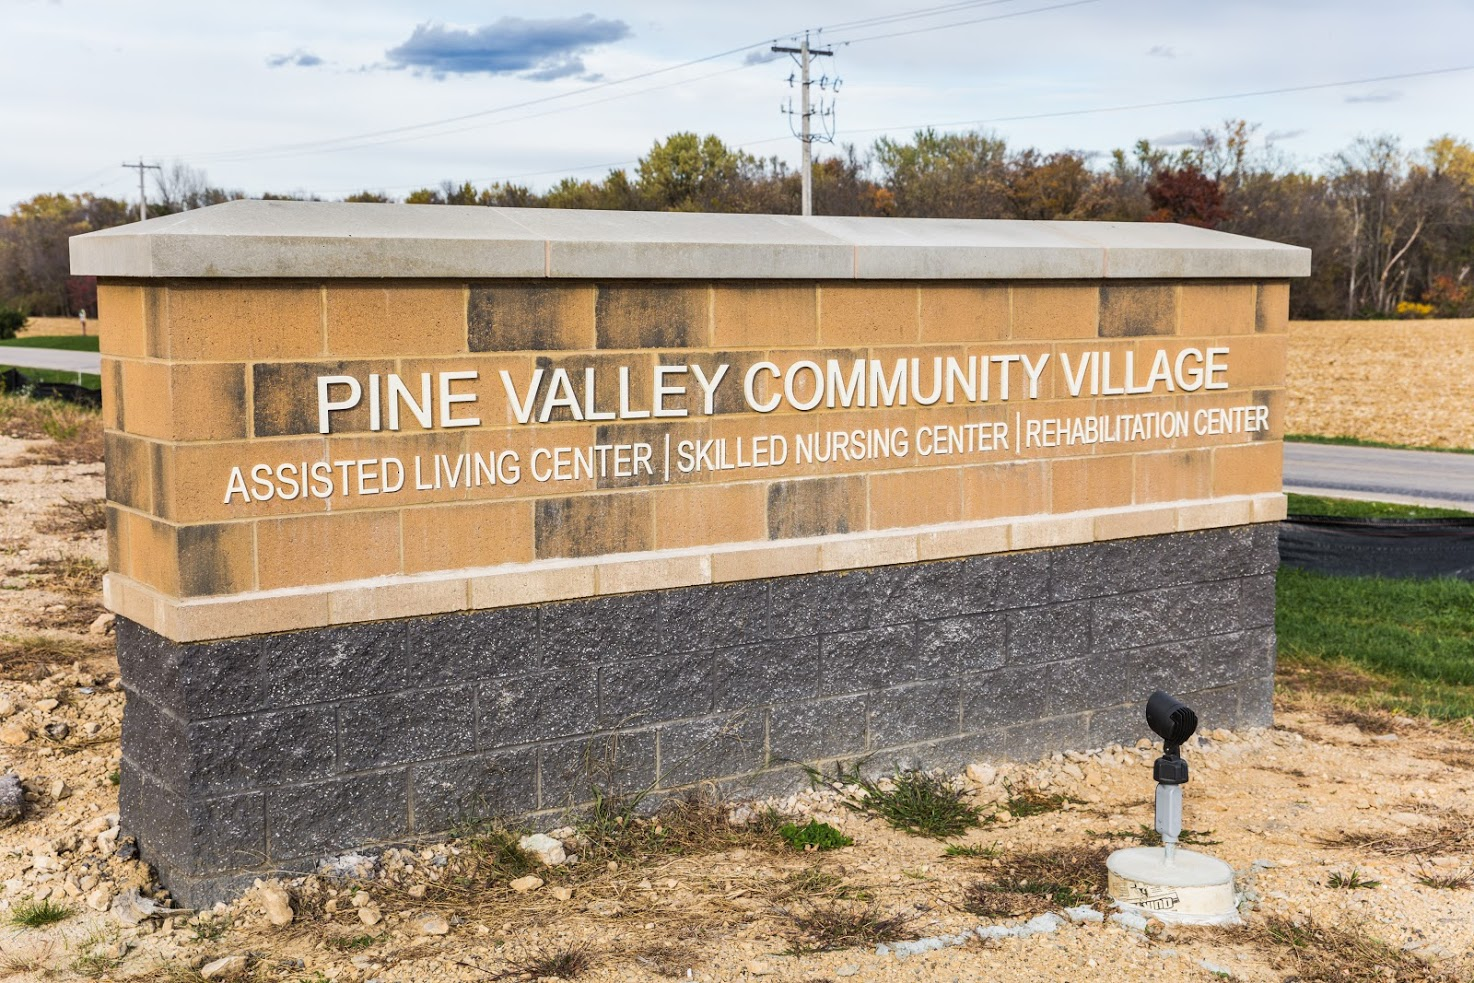 Our Facility - Pine Valley Community Village